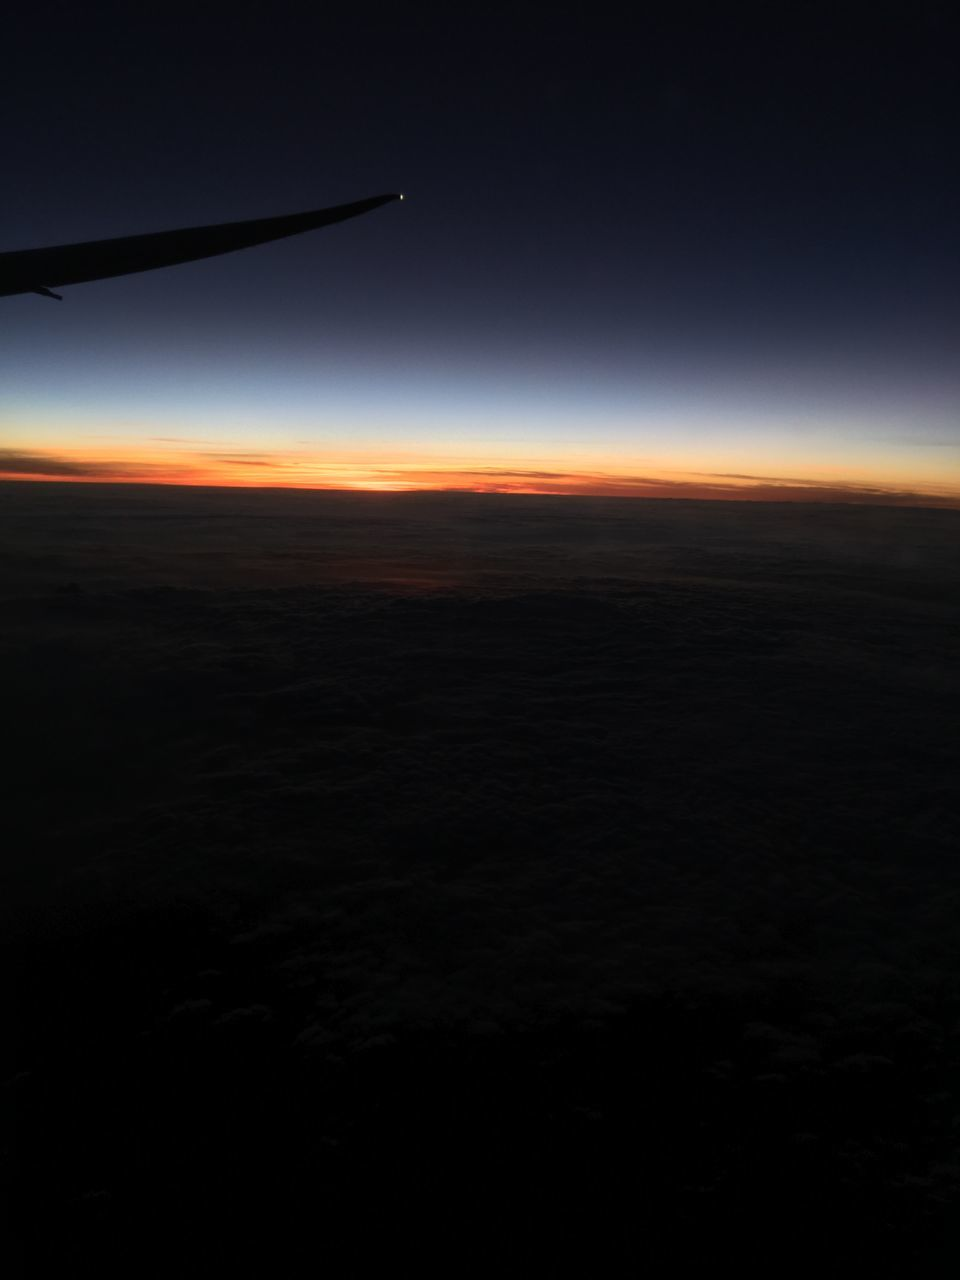 airplane, journey, transportation, travel, sunset, flying, air vehicle, mode of transport, airplane wing, sky, scenics, nature, no people, aircraft wing, silhouette, mid-air, beauty in nature, tranquility, landscape, outdoors, runway, day